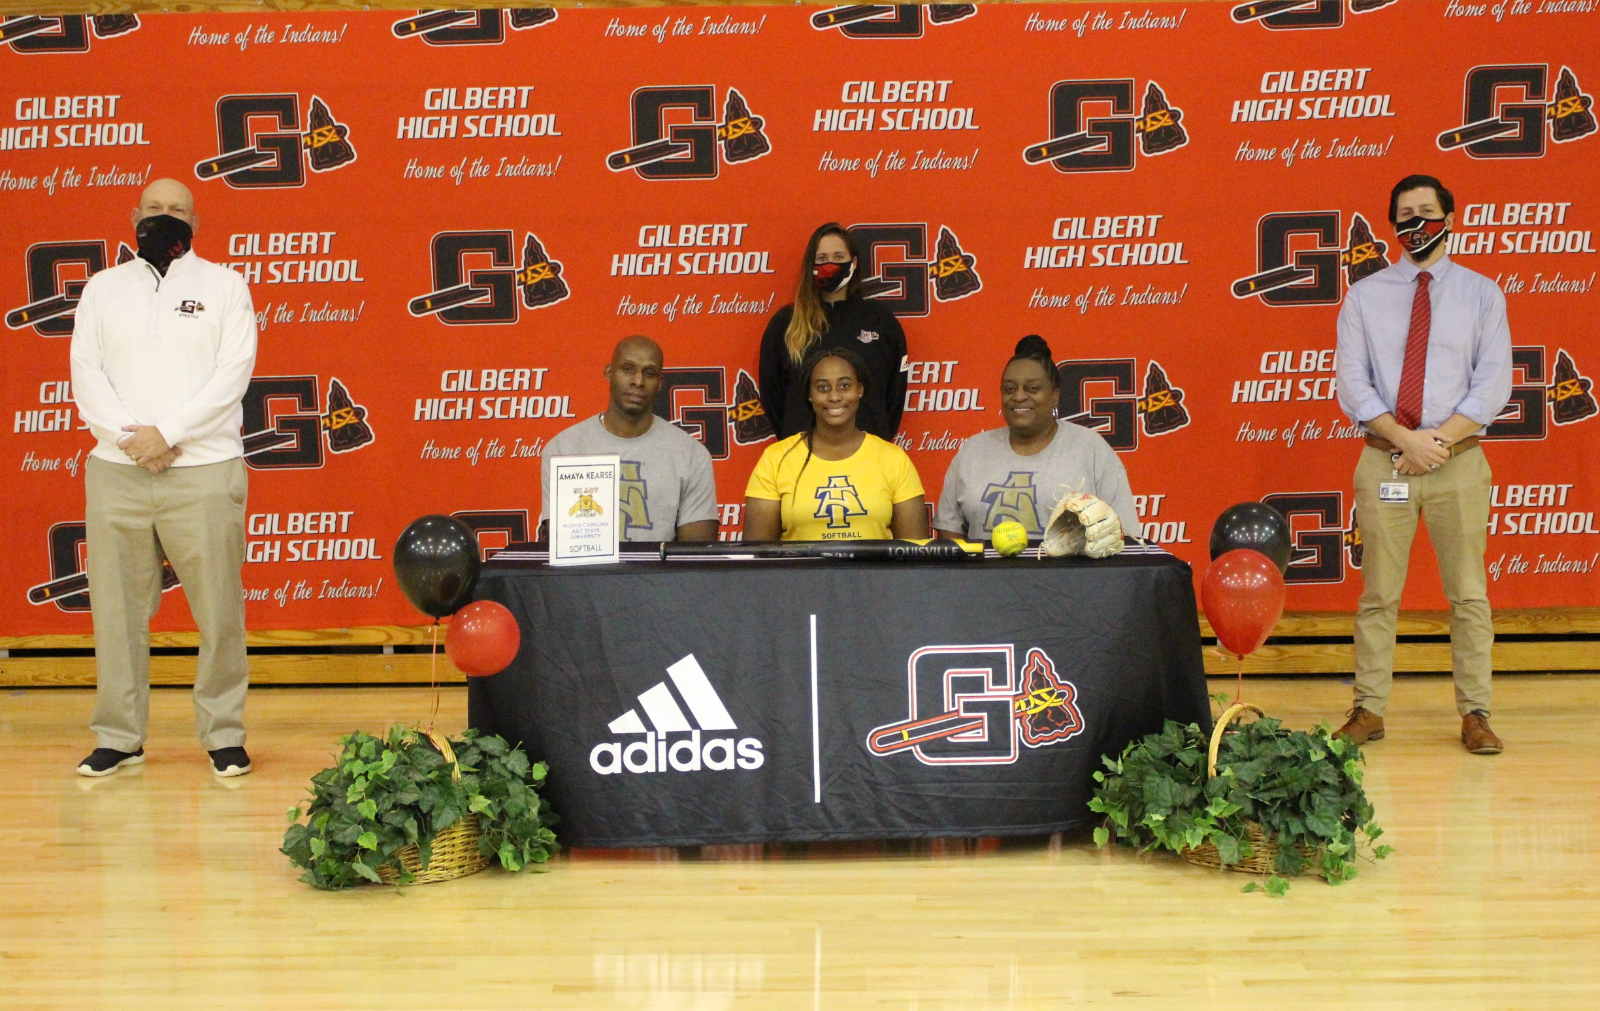 Gilbert HS National Signing Day 2020